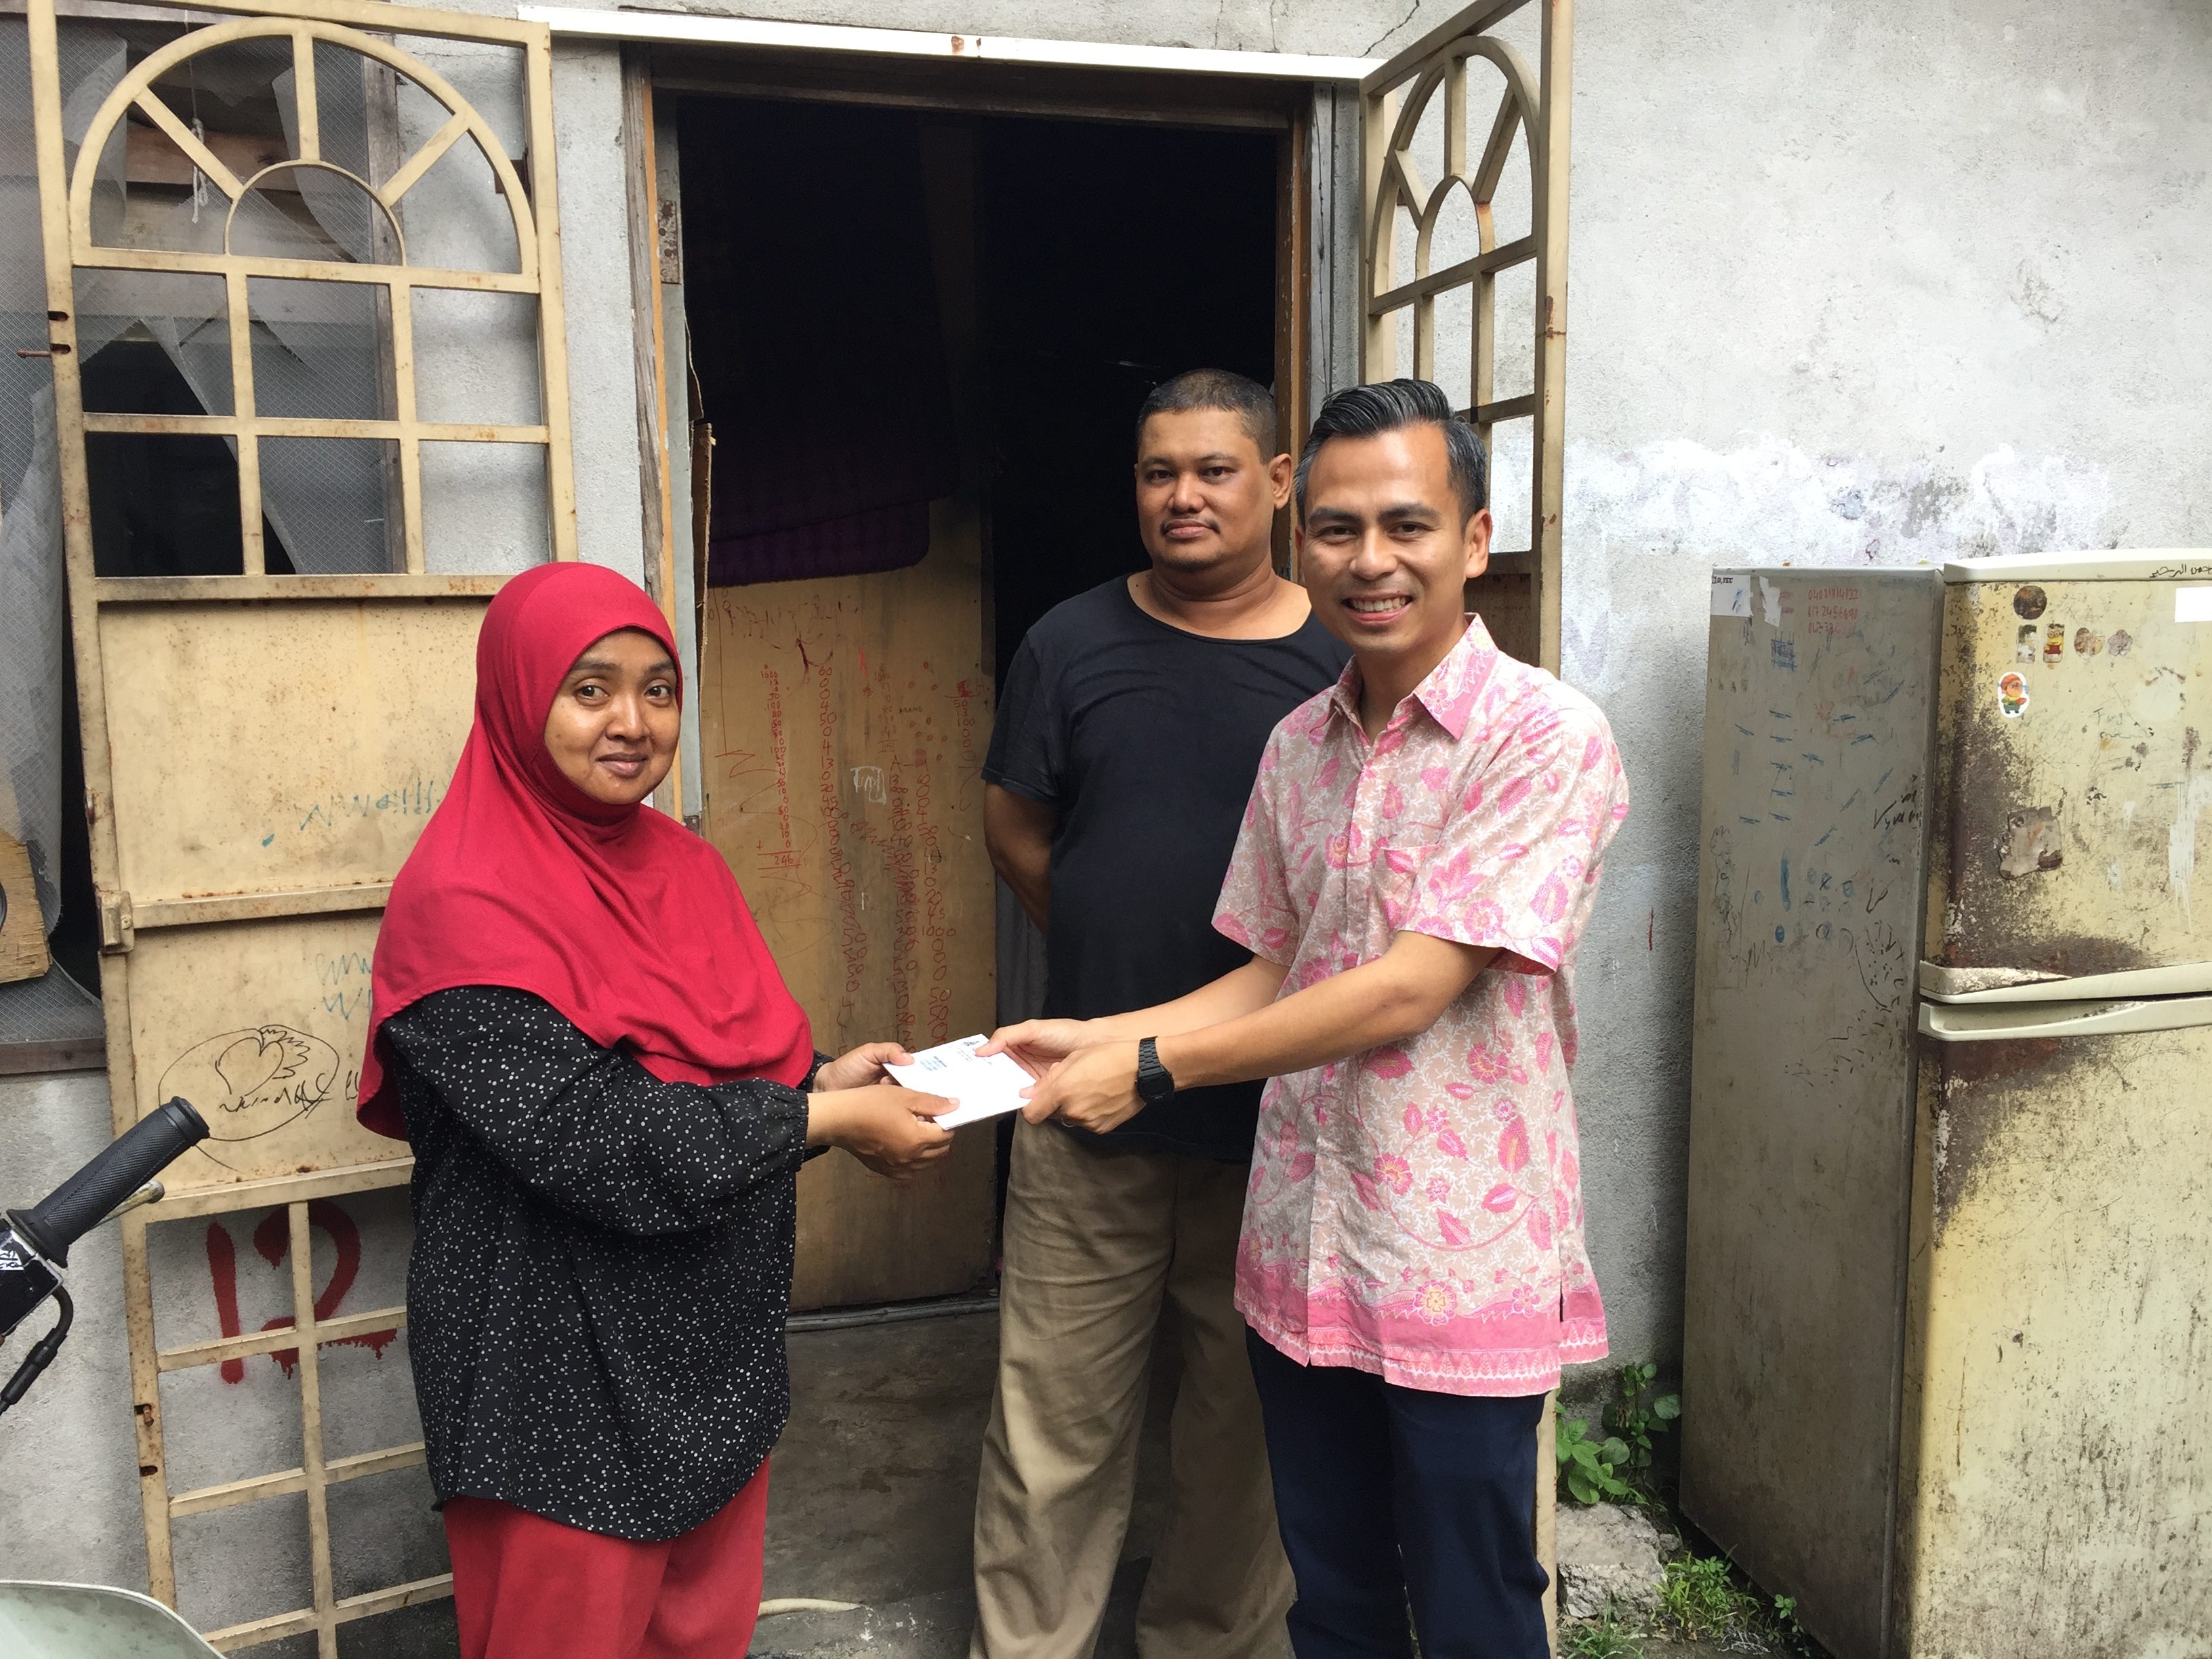 (right) Lembah Pantai MP Fahmi Fadzil handing over the offer letter to (left) Farizah Ibrahim while her husband (middle) Shahdi Abdullah looks on.